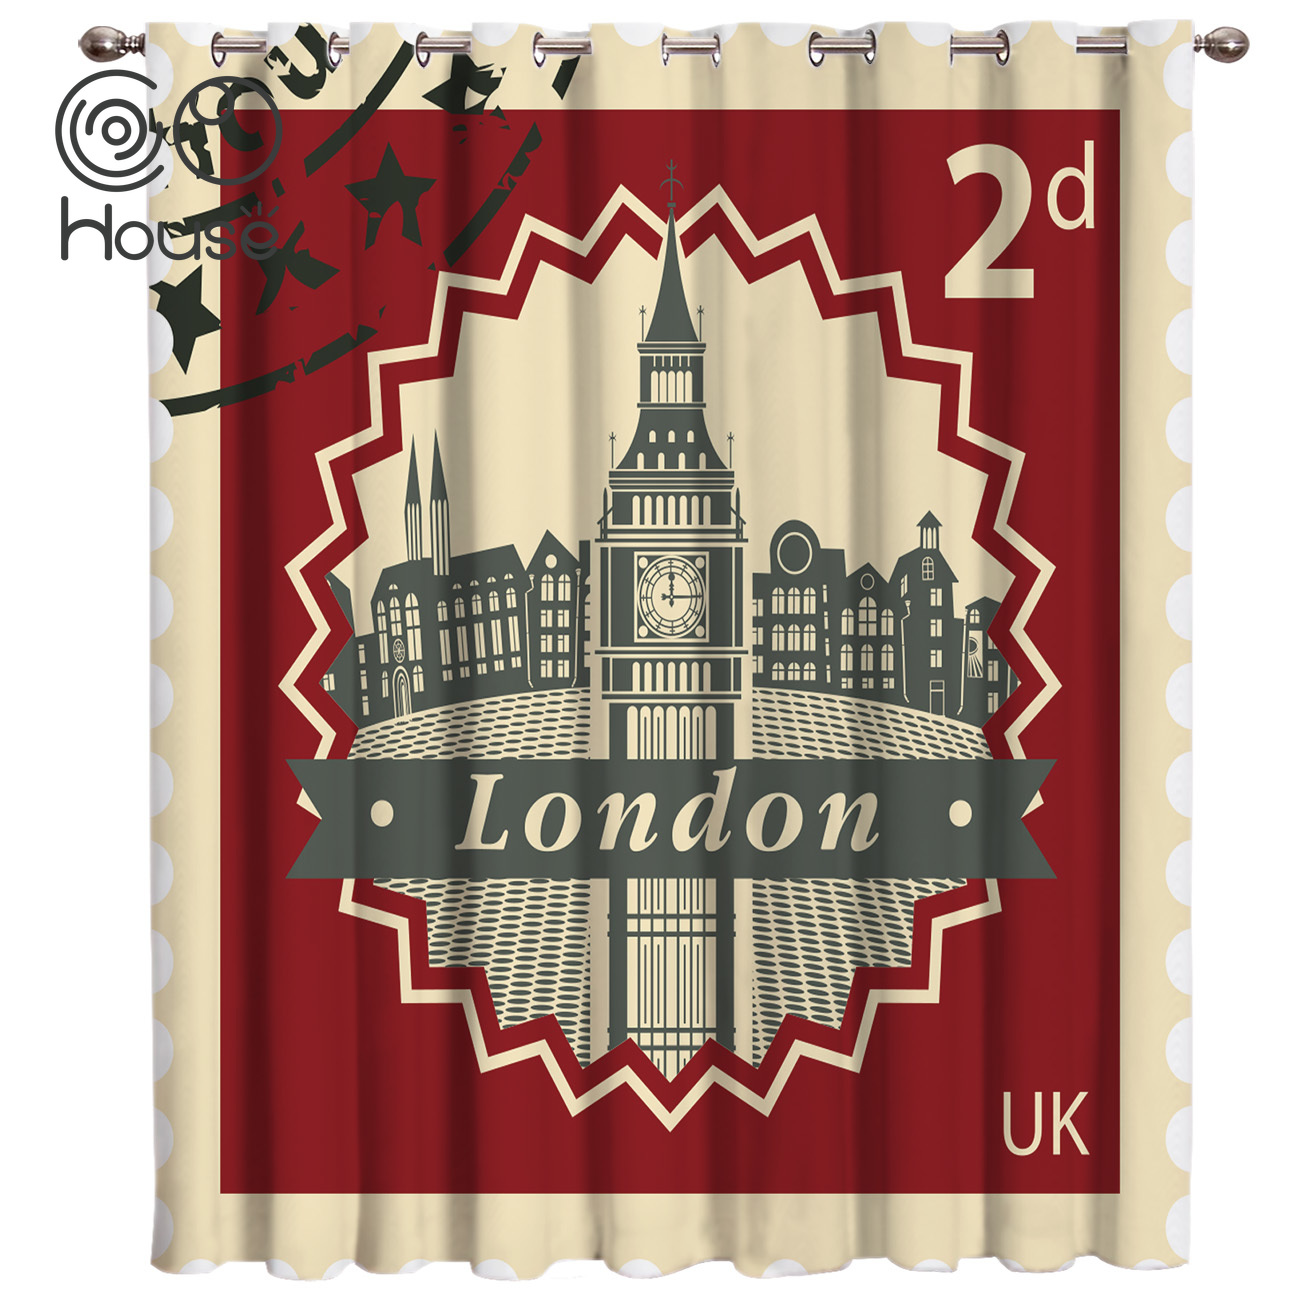 Vintage London Stamp Window Treatments Curtains Valance Room Curtains Large Window Window Blinds Living Room Black